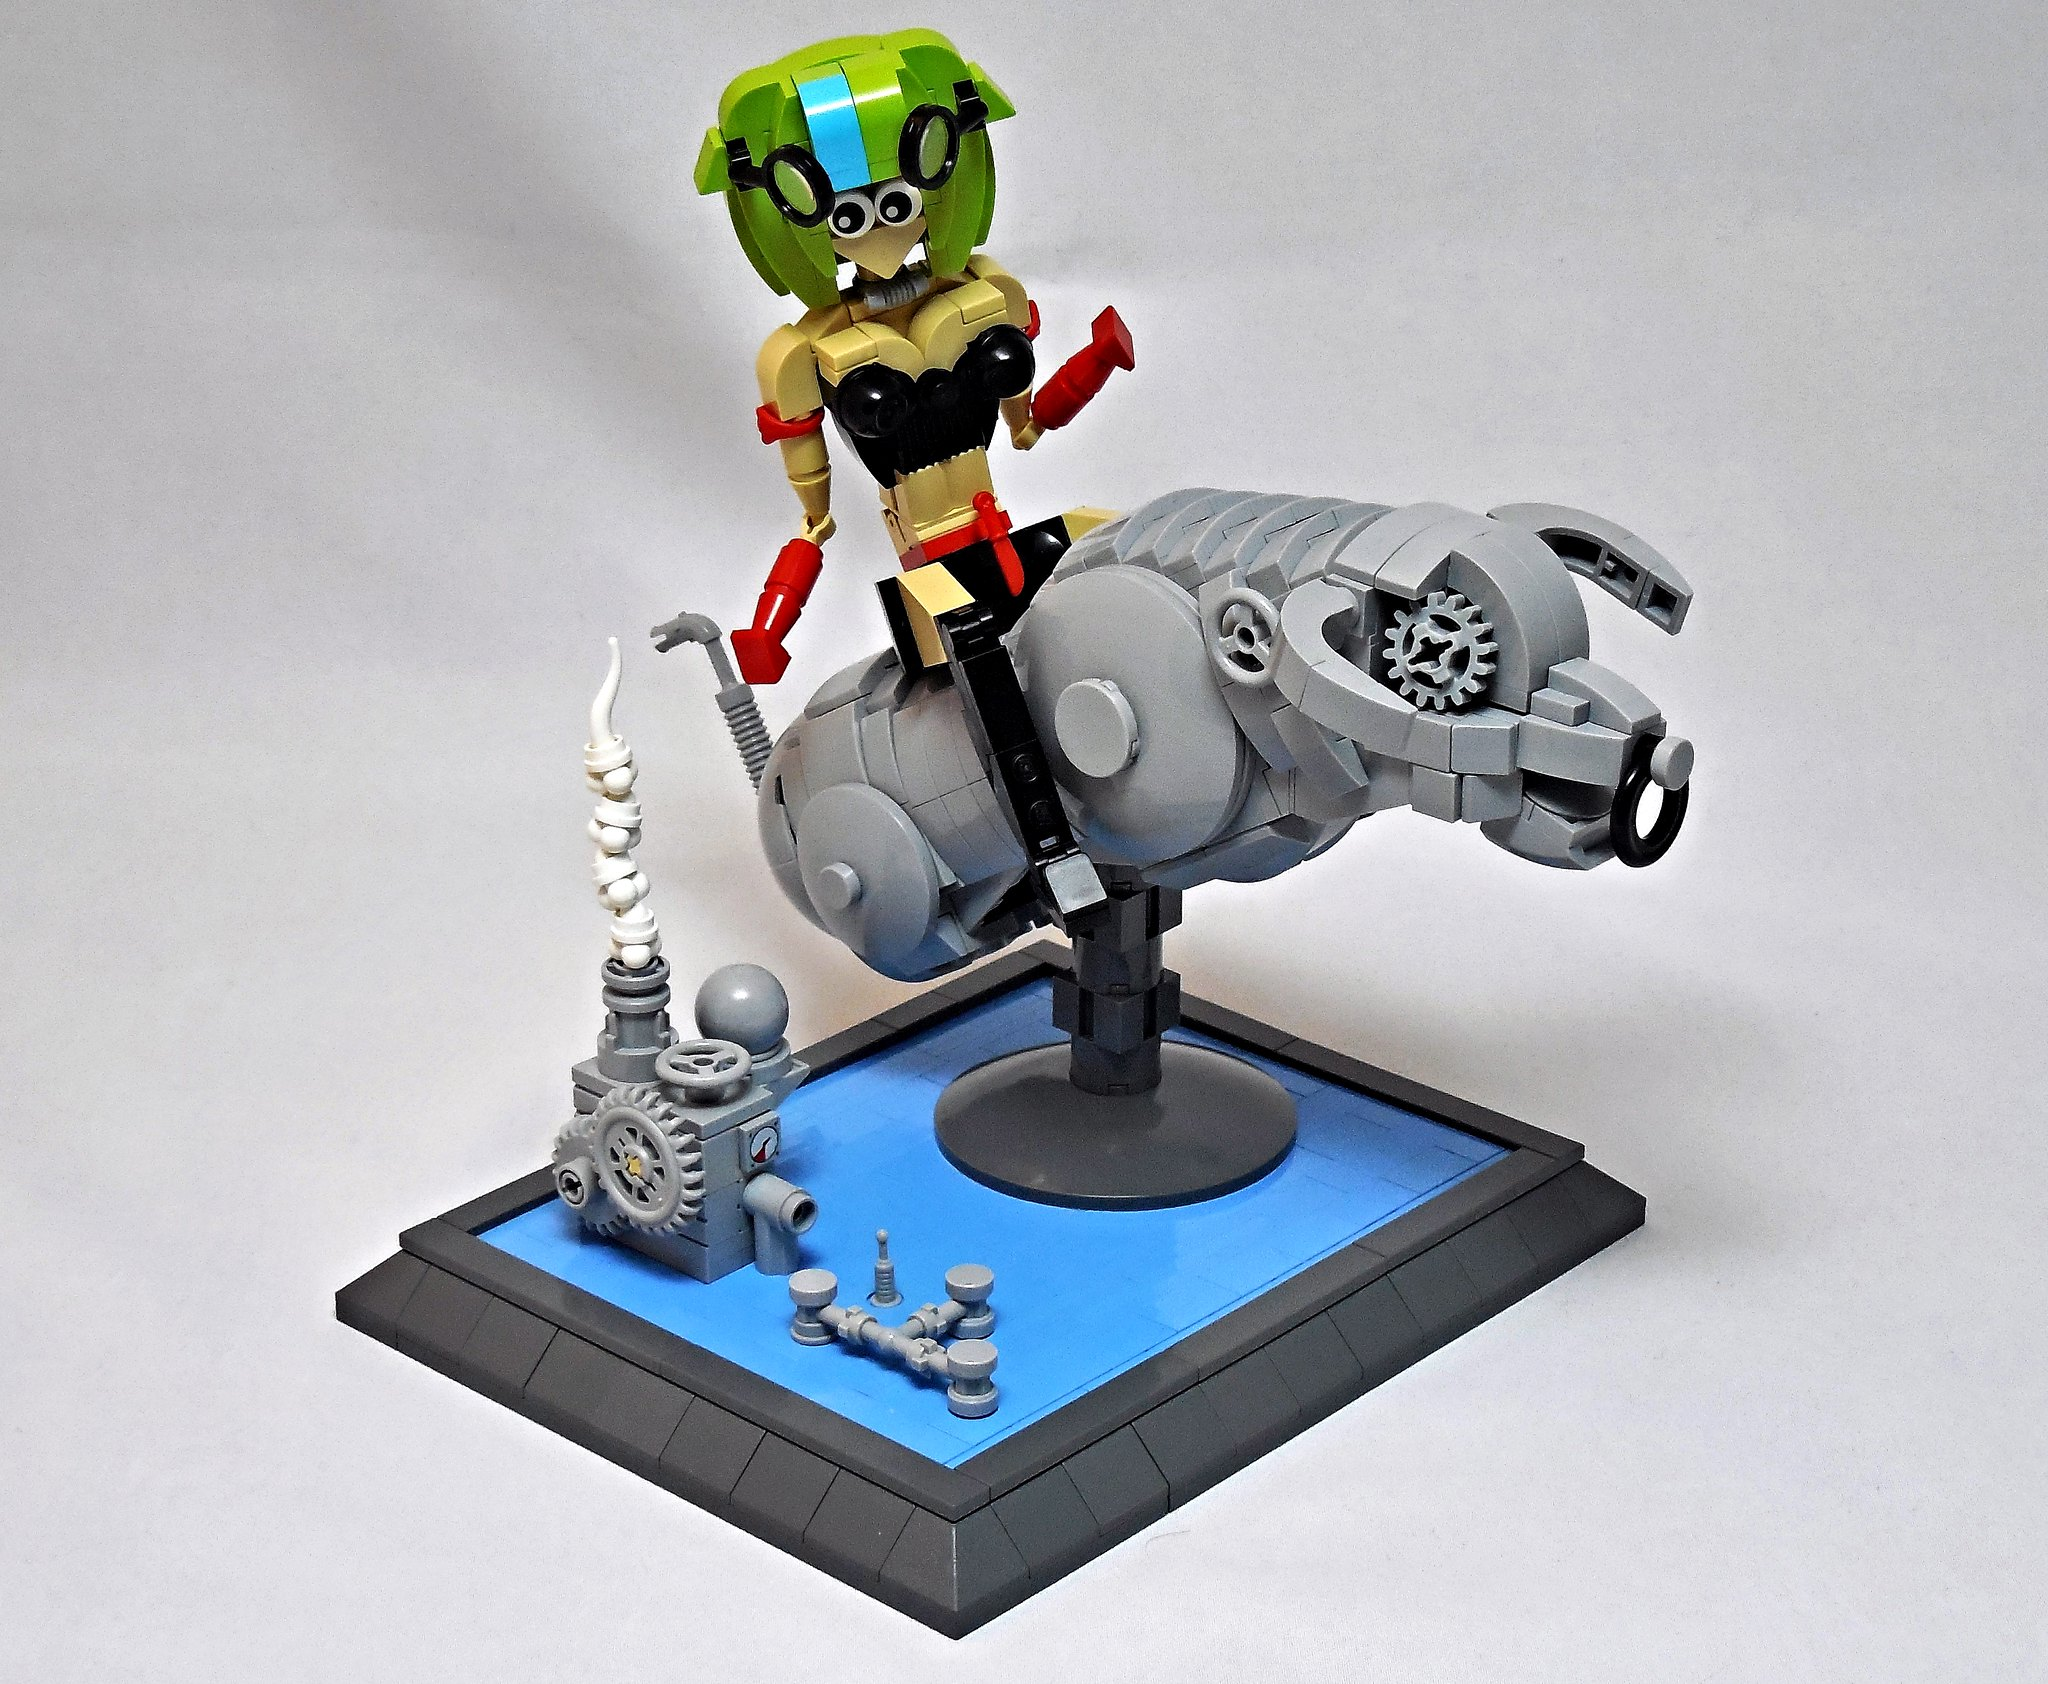 LEGO® MOC by Vitreolum: The Iron Bull